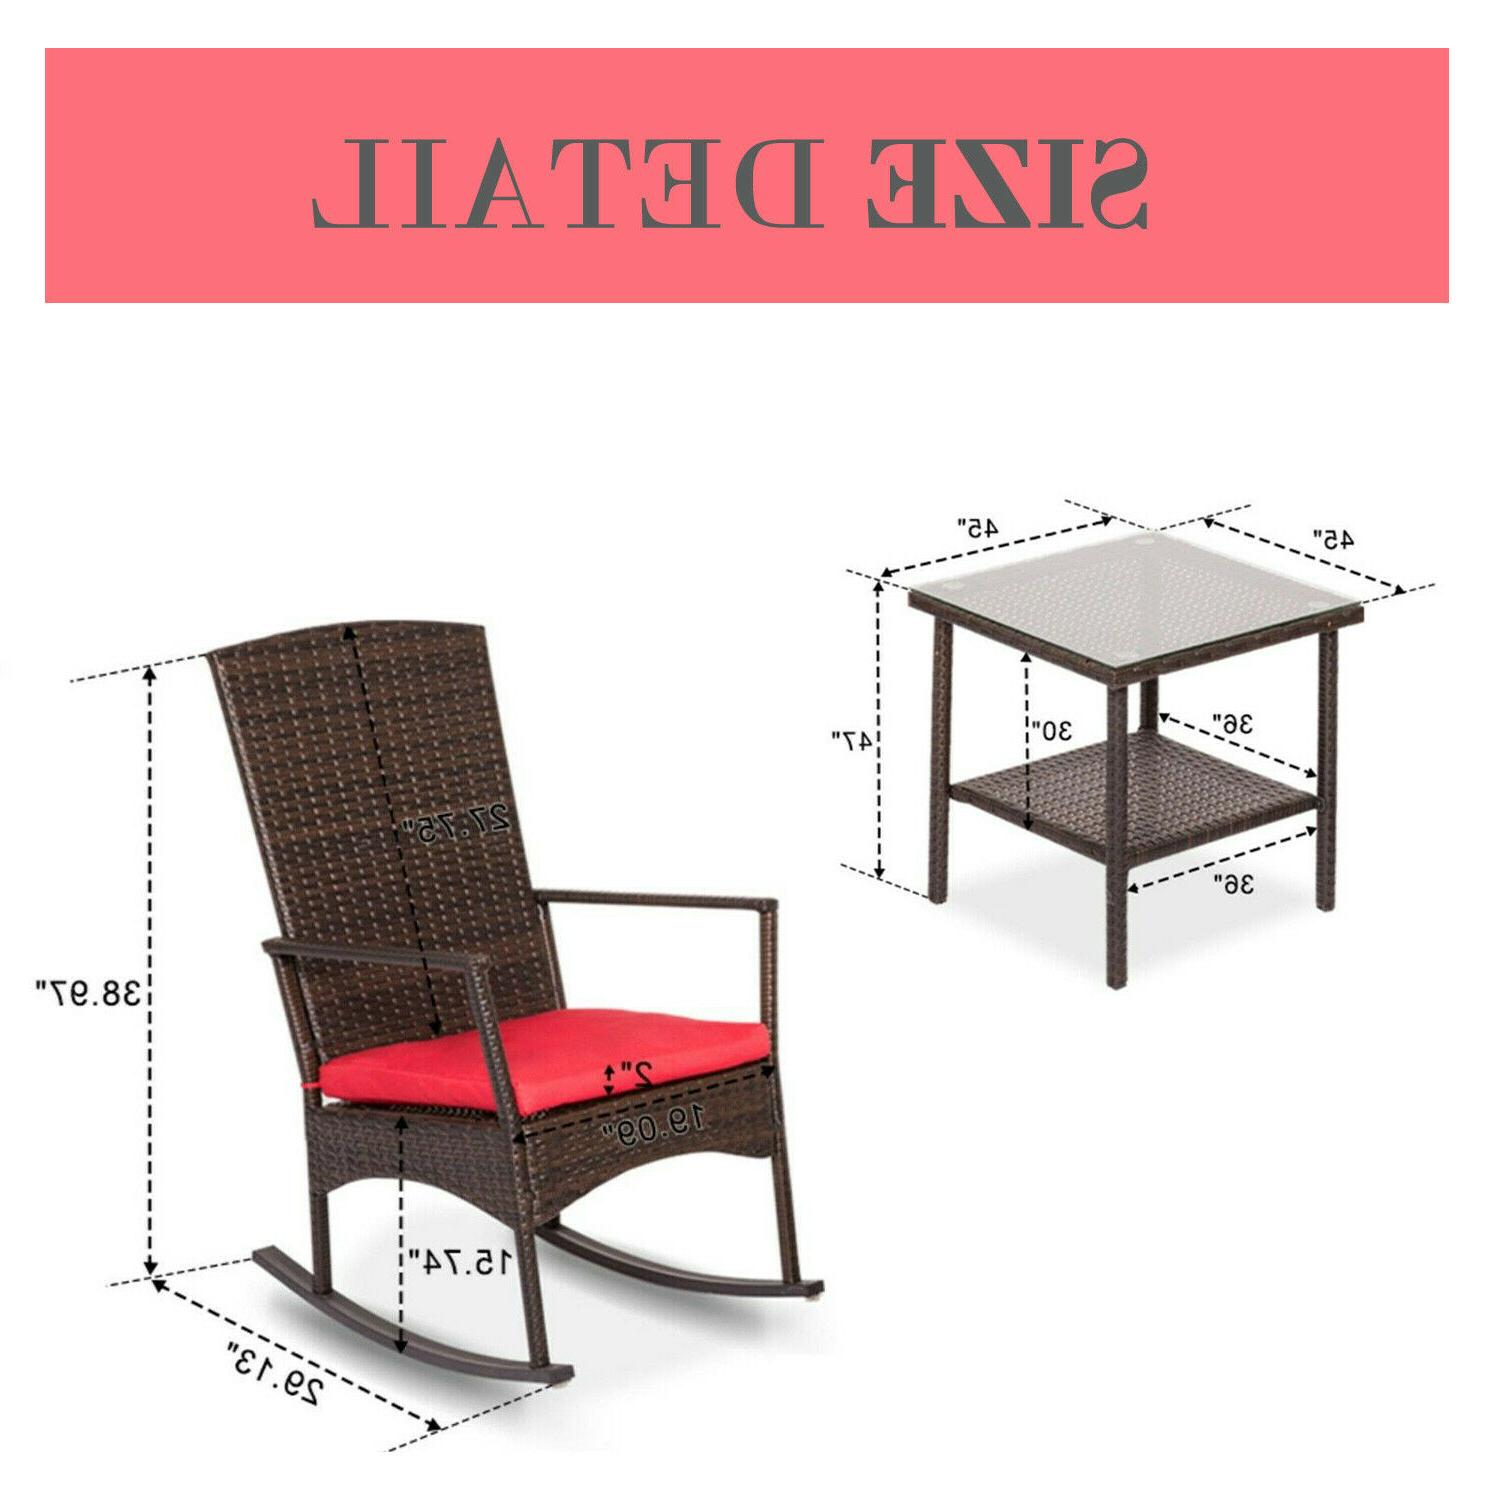 Outdoor Patio Furniture W/ Red Cushion